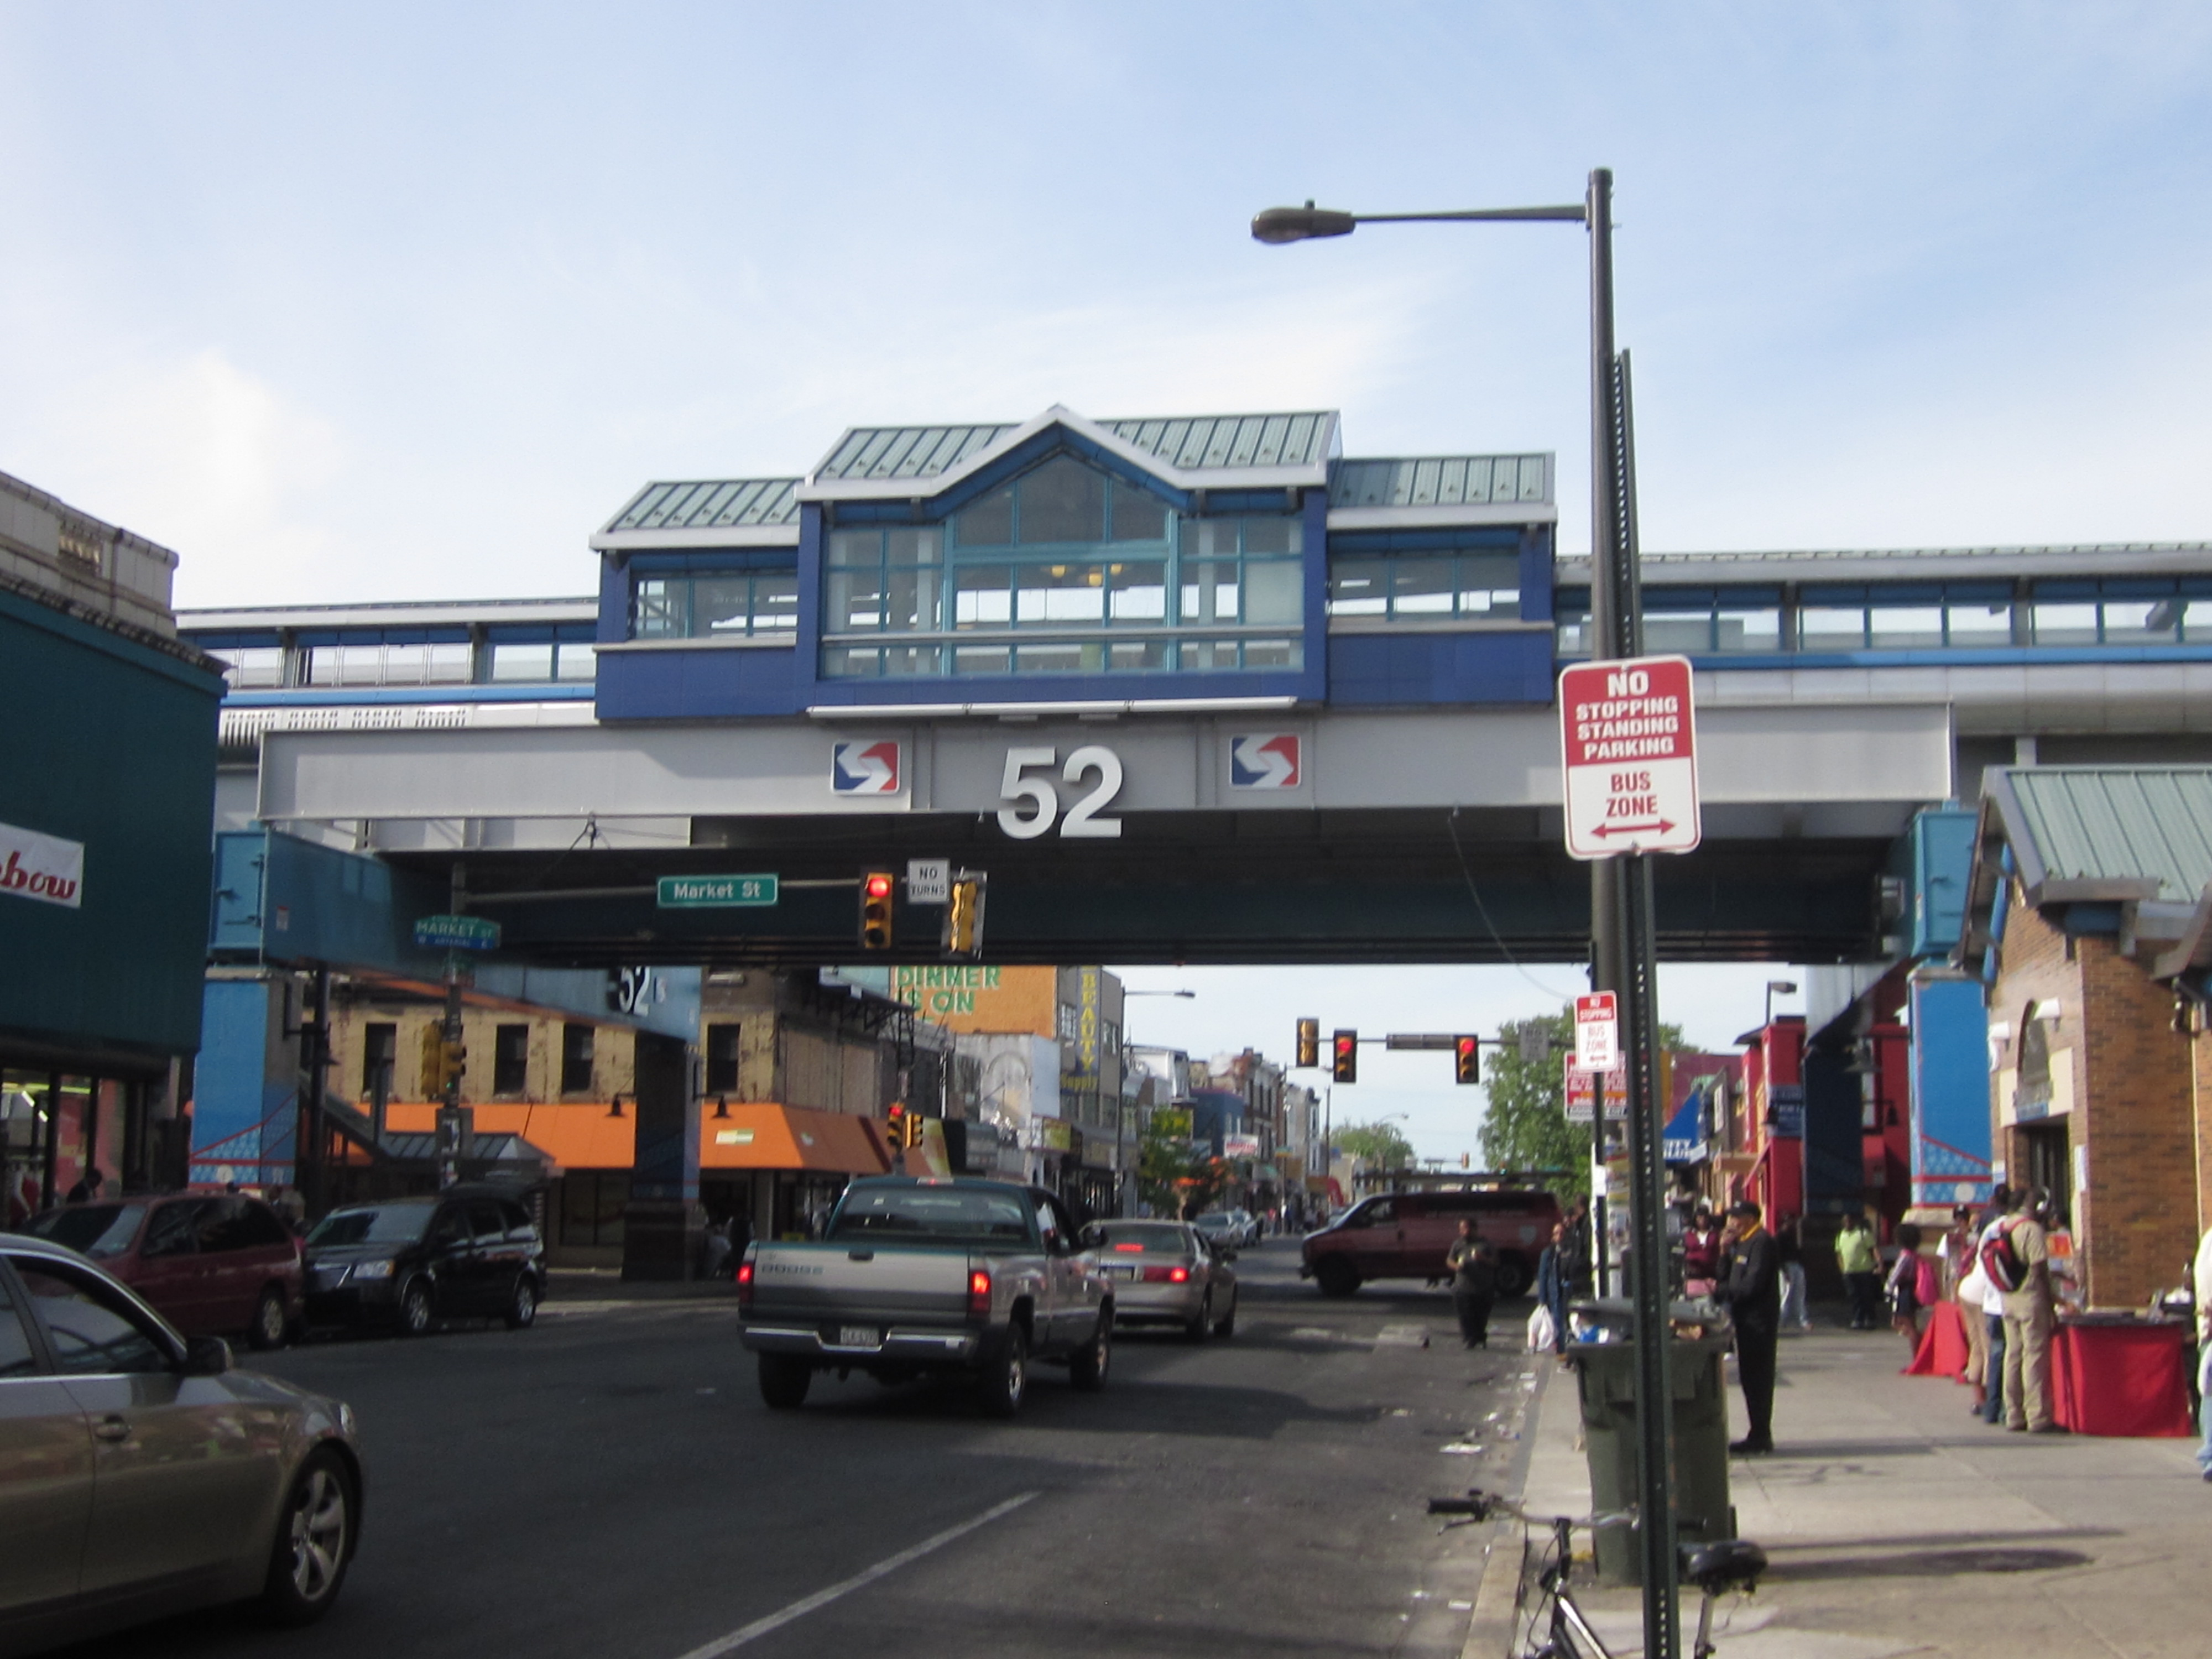 West Philadelphia S Main Street 52nd Street To Become A Main Attraction Philadelphiaheights